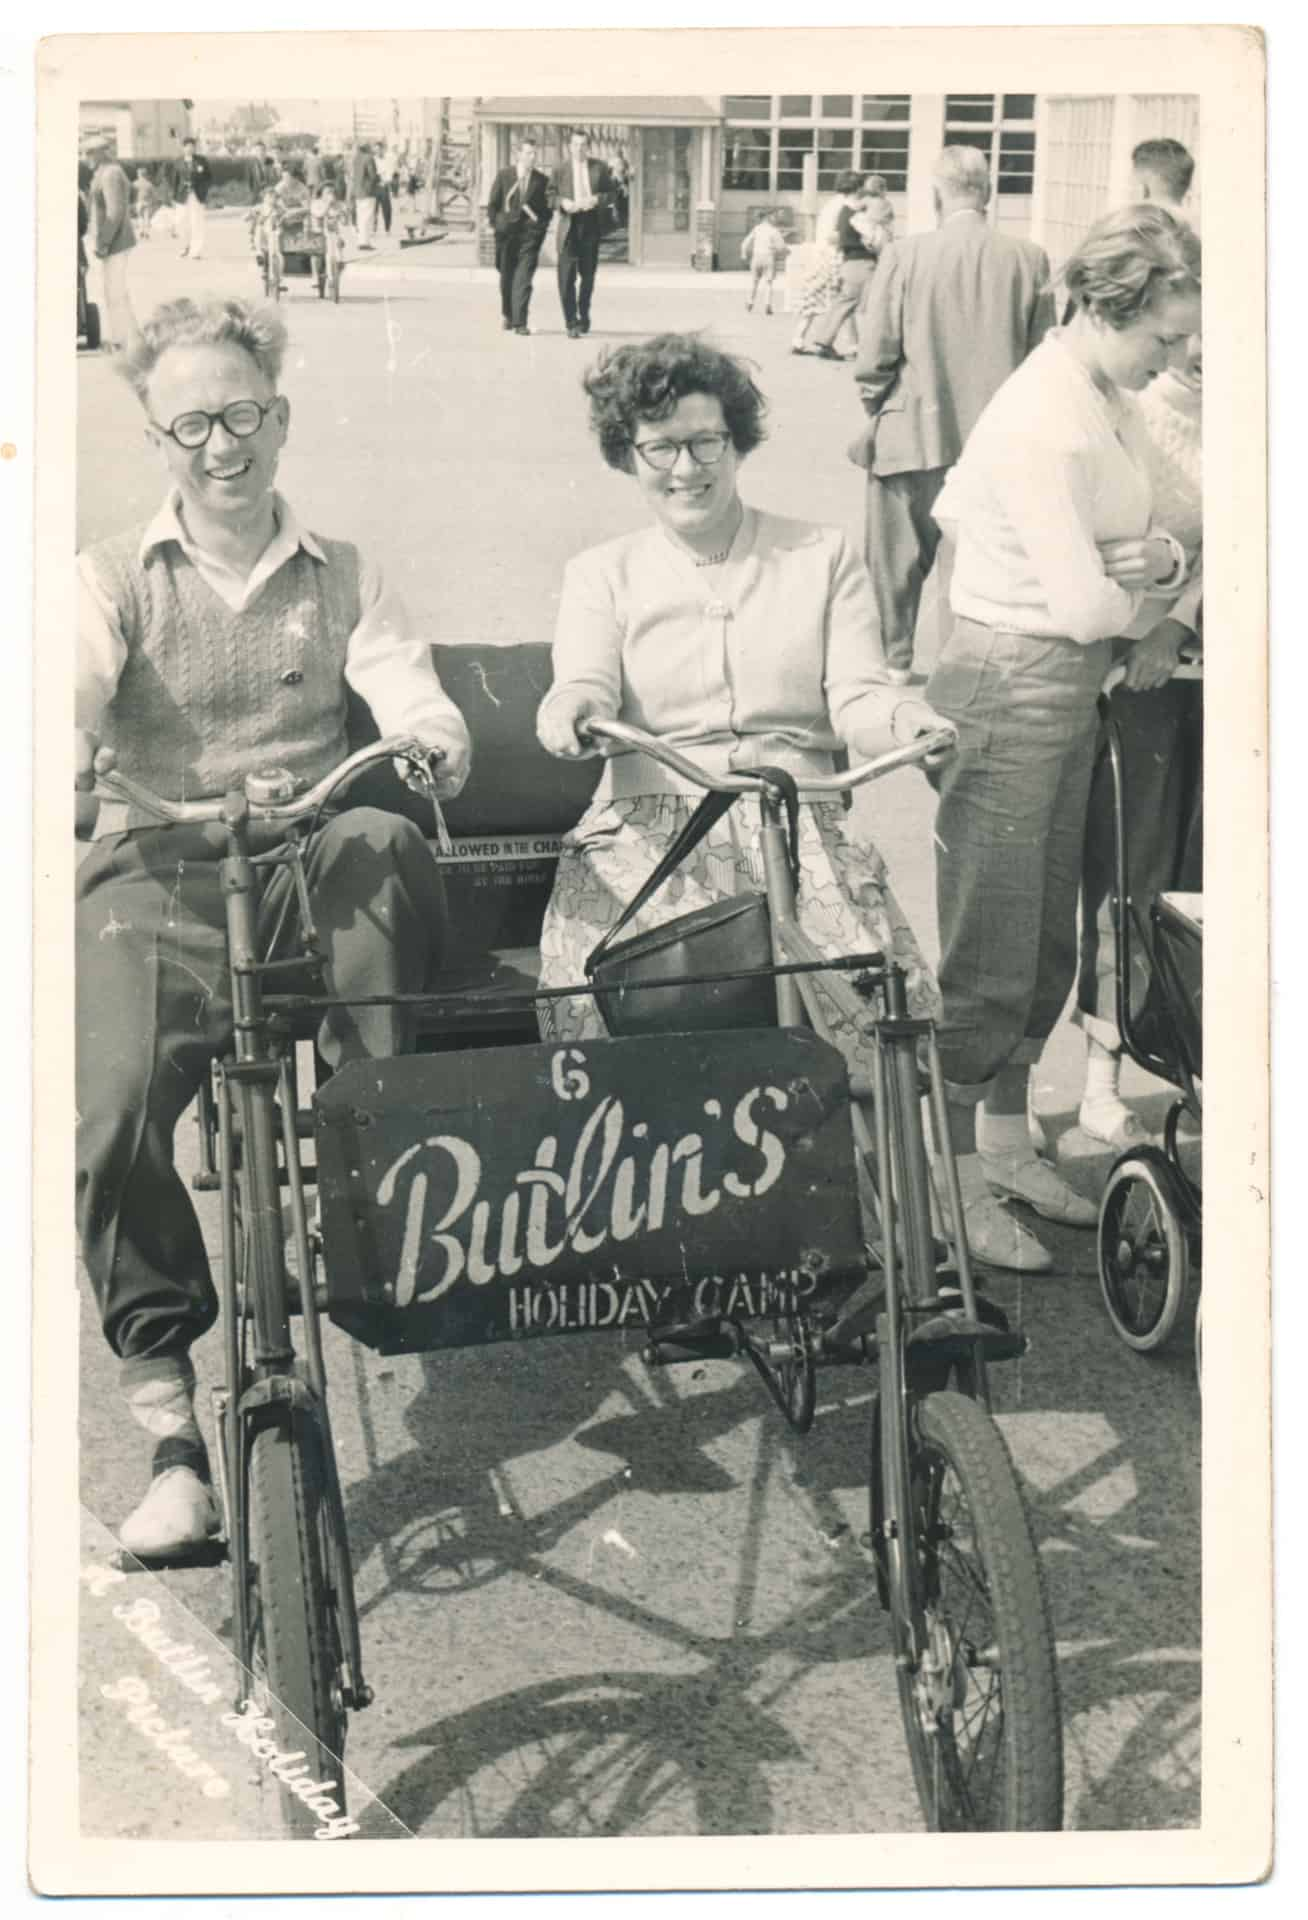 Elsi Jones and Harry Jones during their holiday in Pontins. Photo from Warren Seymour's family album